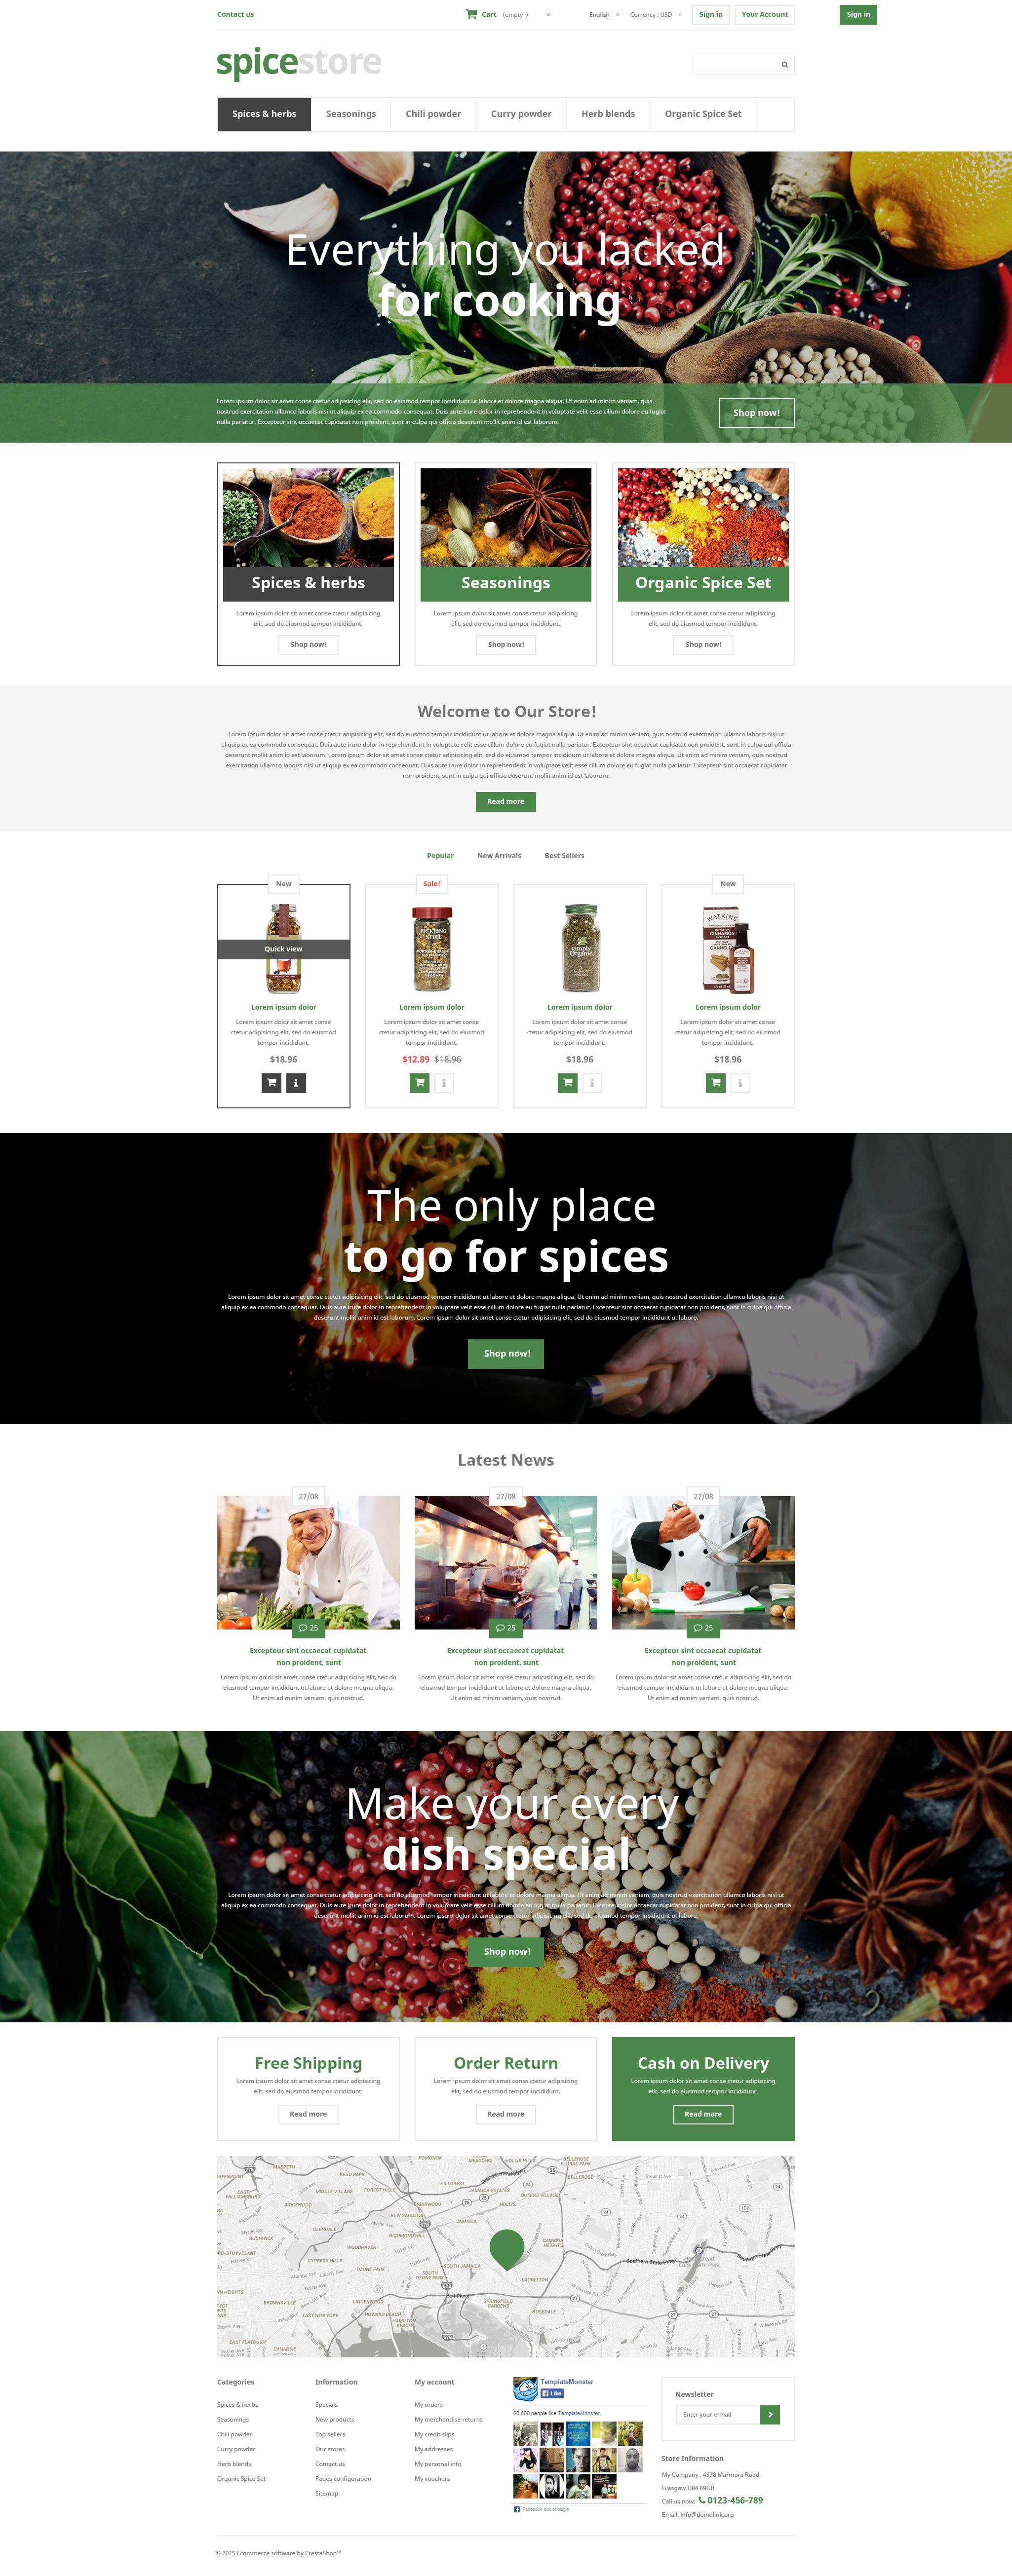 clean ecommerce store spicy flavour shop cook pepper salt powder blend cinnamon dried herbs PrestaShop Theme